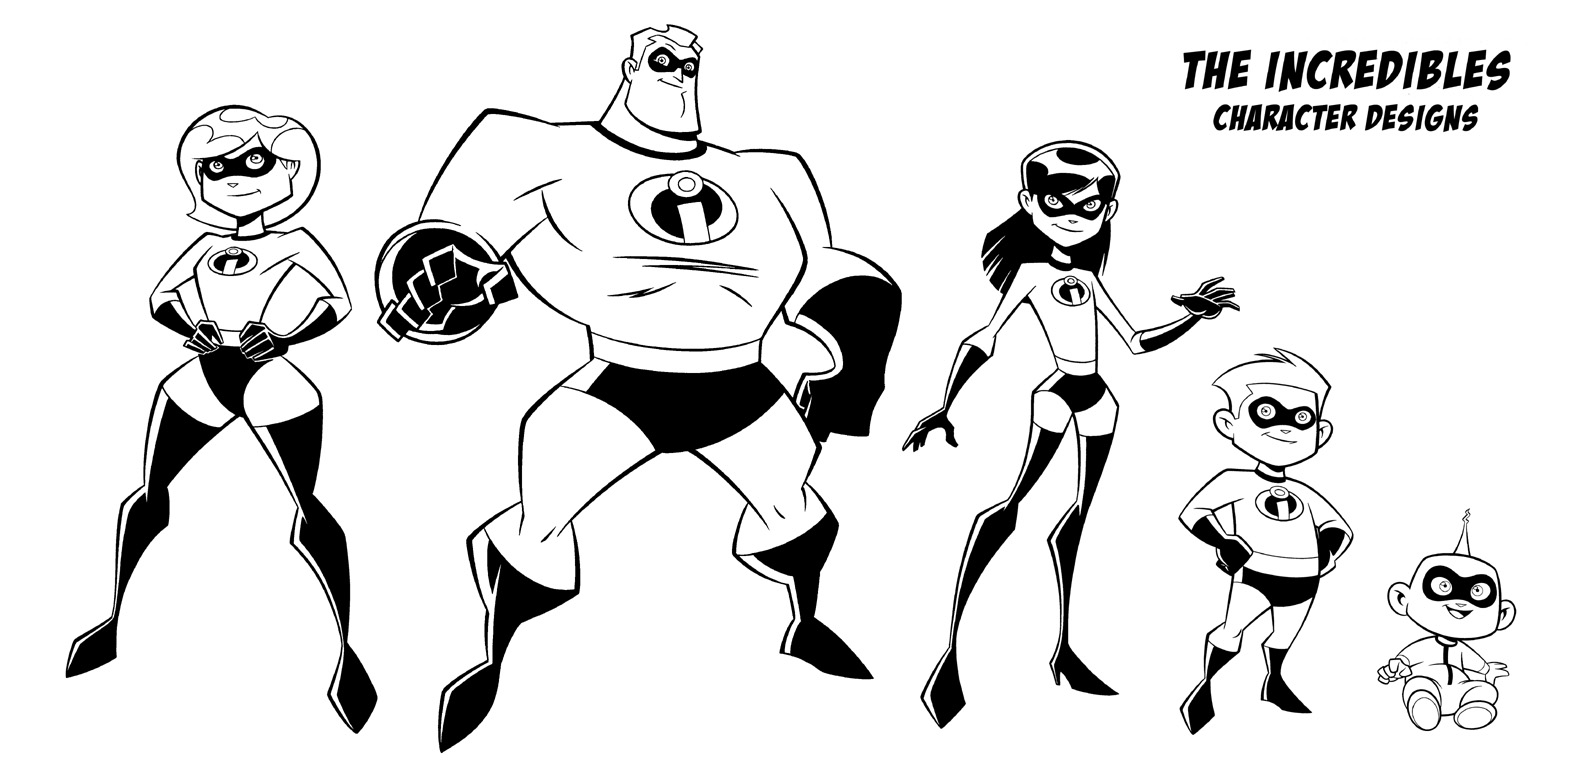 free incredibles 2 coloring pages incredibles 2 coloring pages get coloring pages coloring 2 pages free incredibles